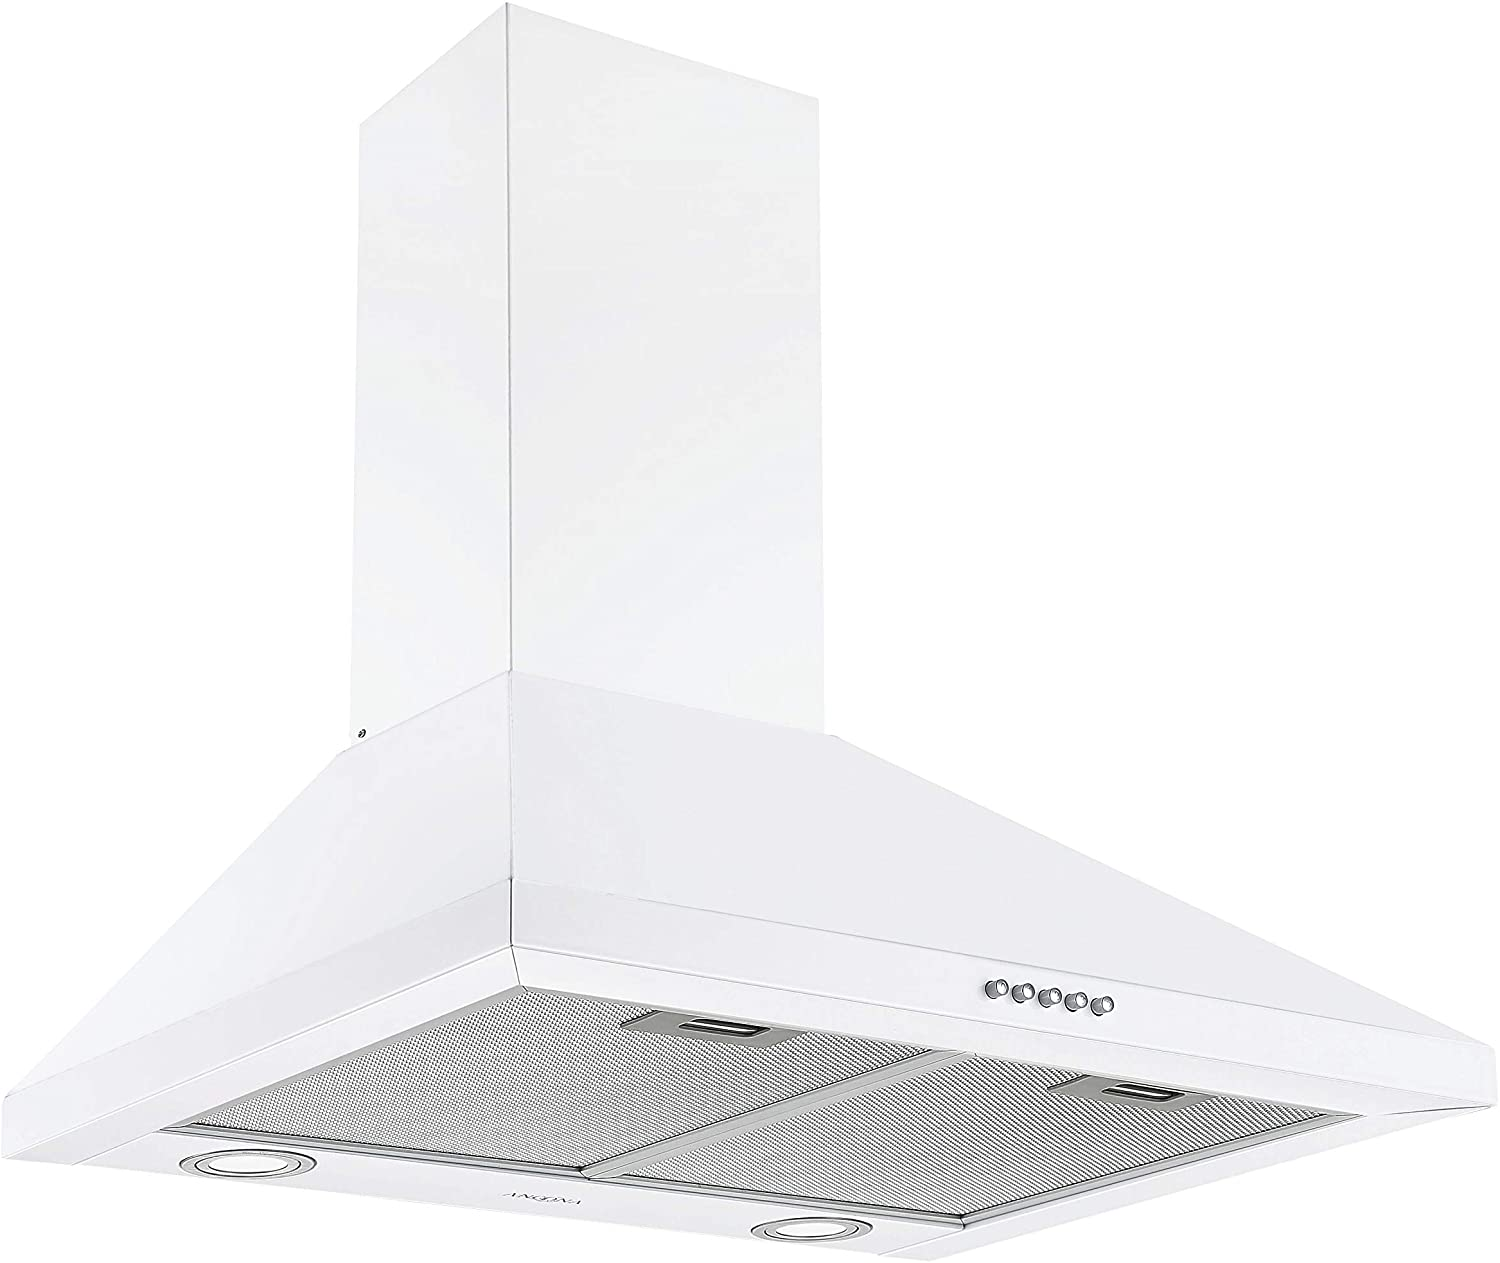 Top 10 Best Range Hoods for Gas Stoves (In-depth Review 2021) 4